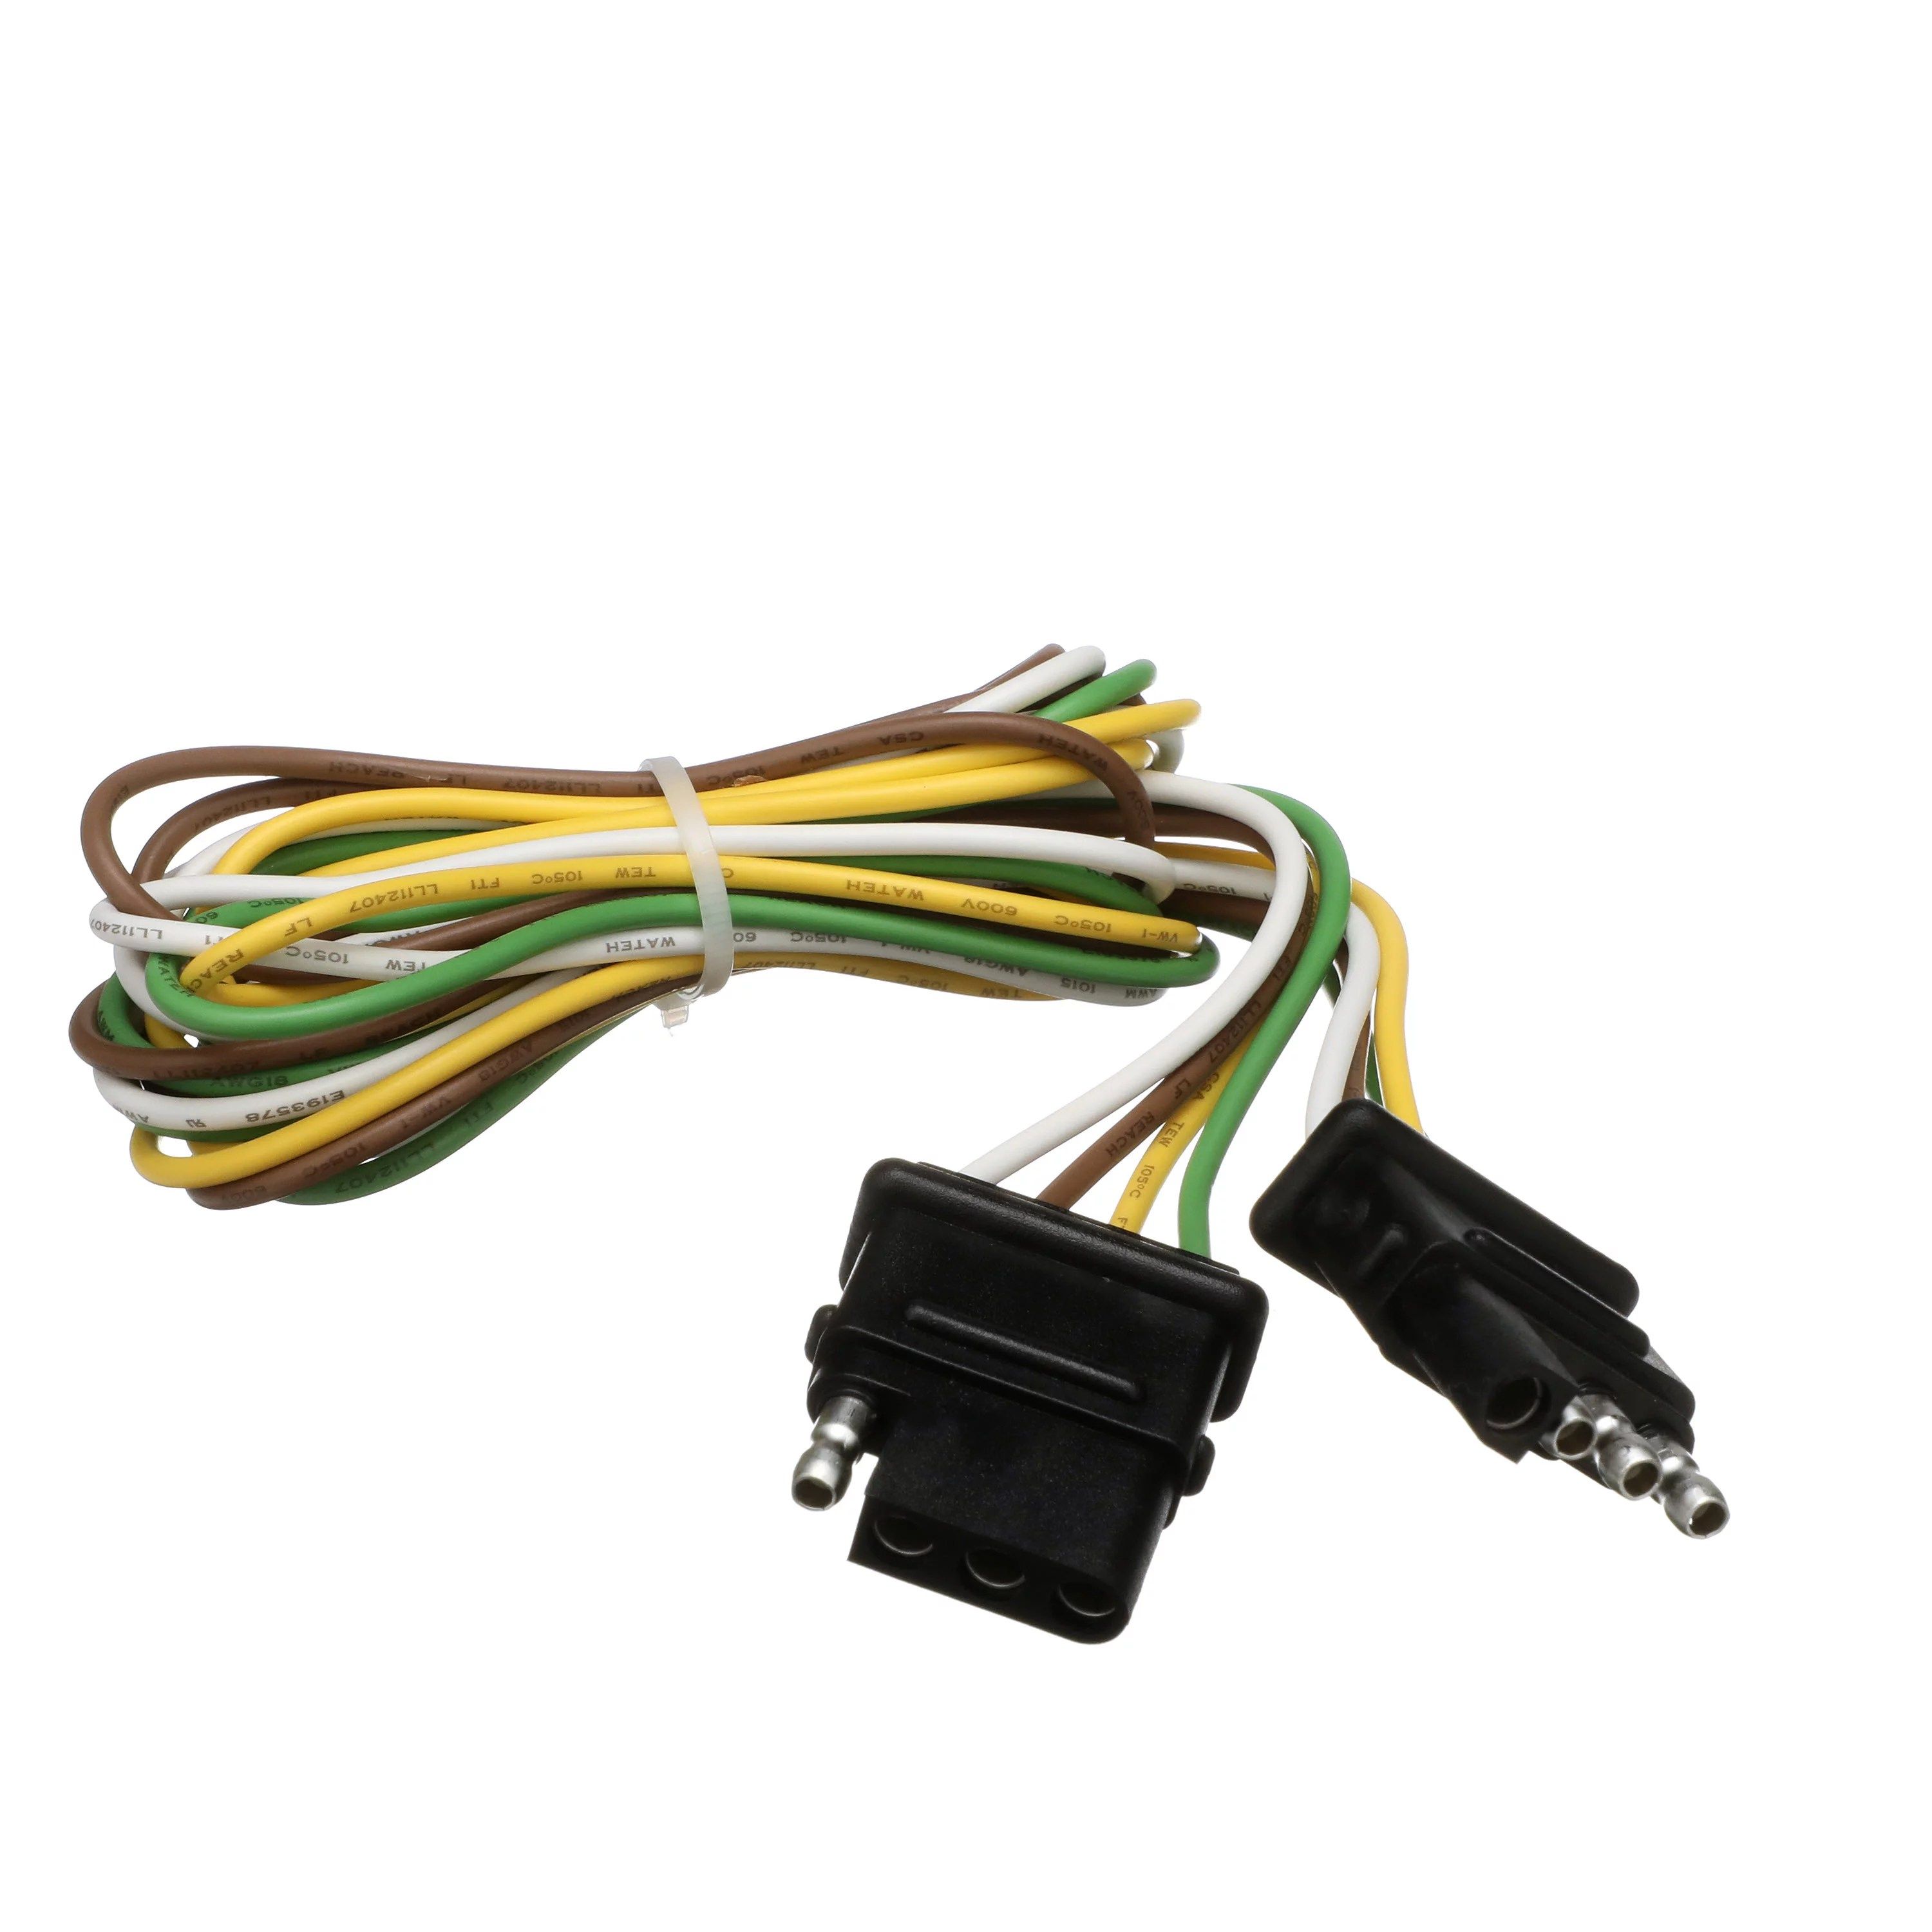 medium resolution of seachoice 13991 4 pole boat boat trailer light wire harness extension 48 inches 4 pin wiring harness extension wiring harness extension